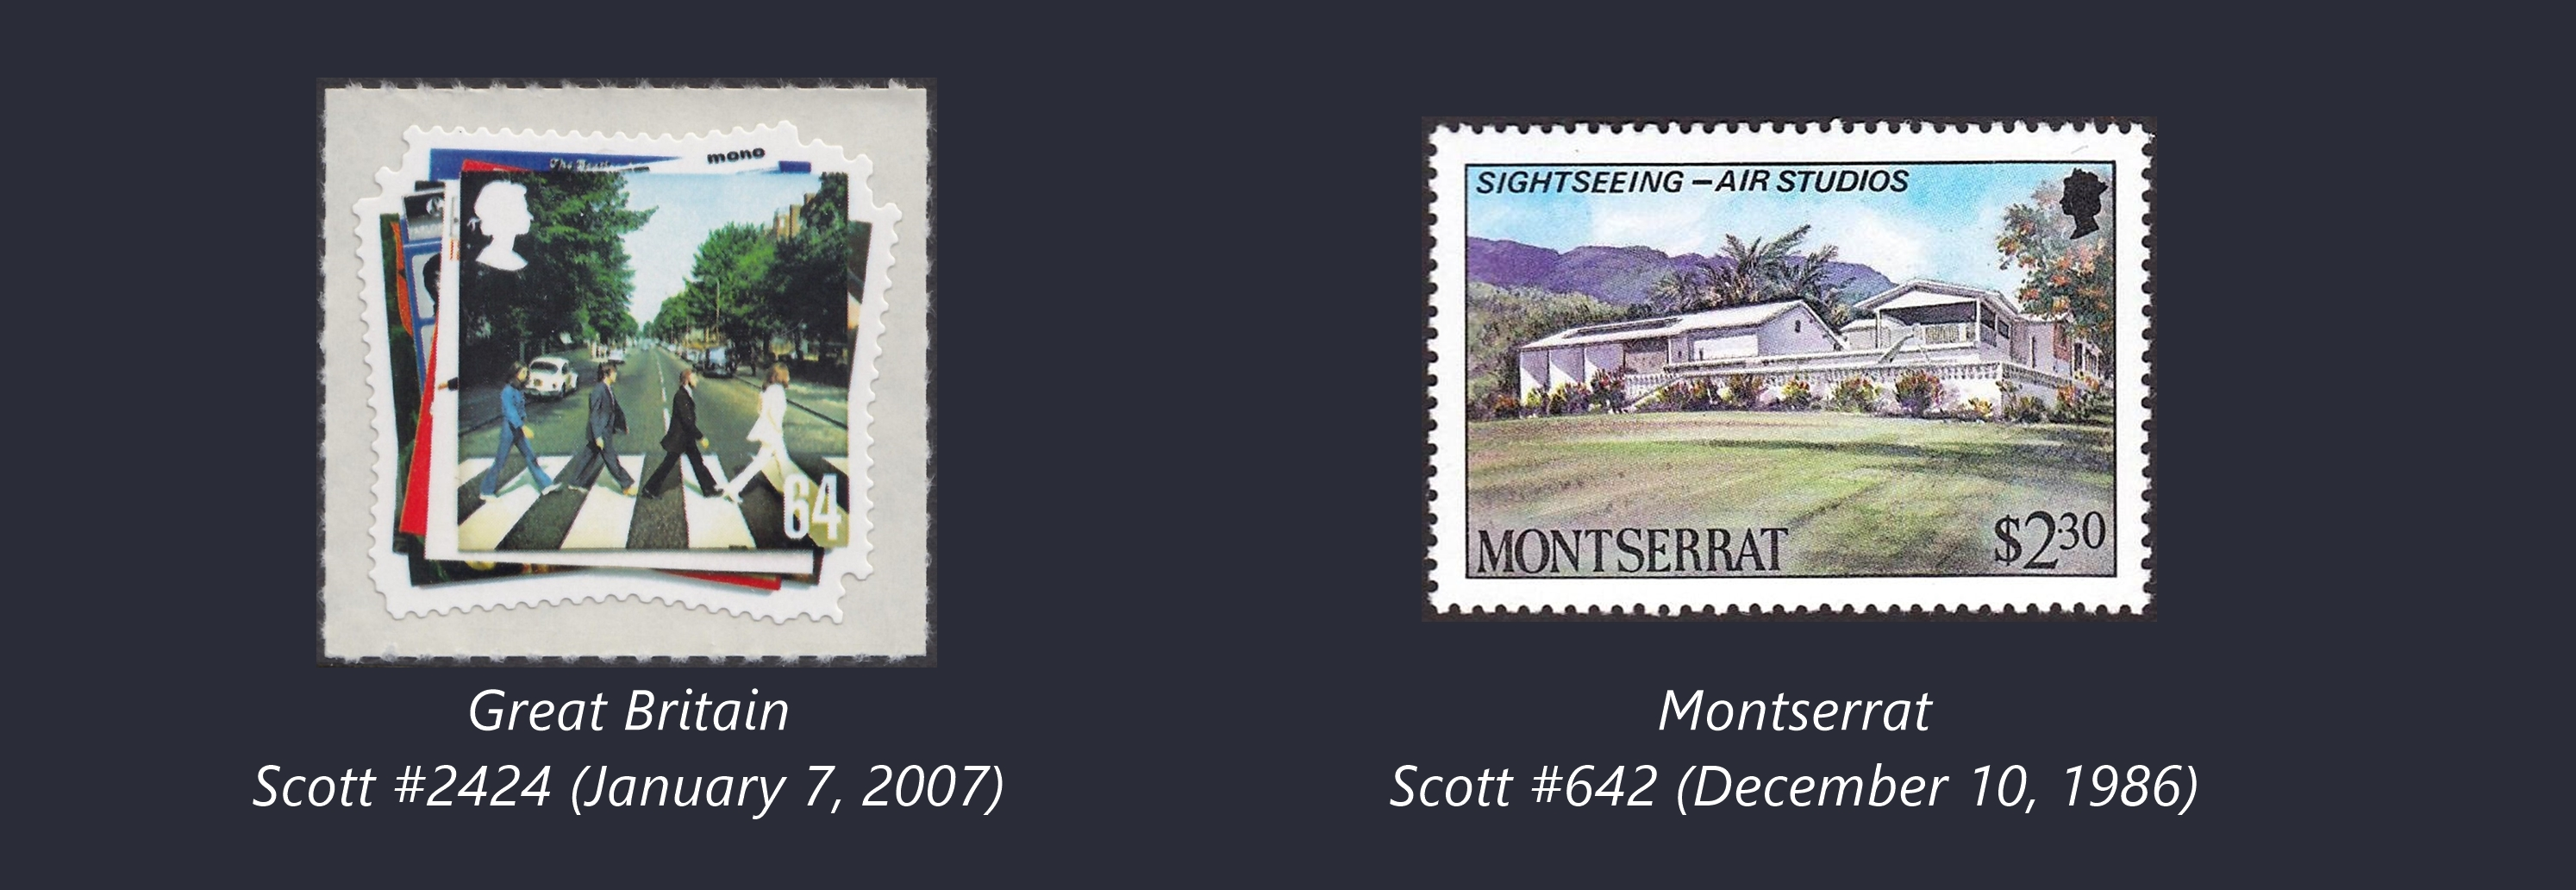 Two stamps related to The Beatles and their producer, Sir George Martin